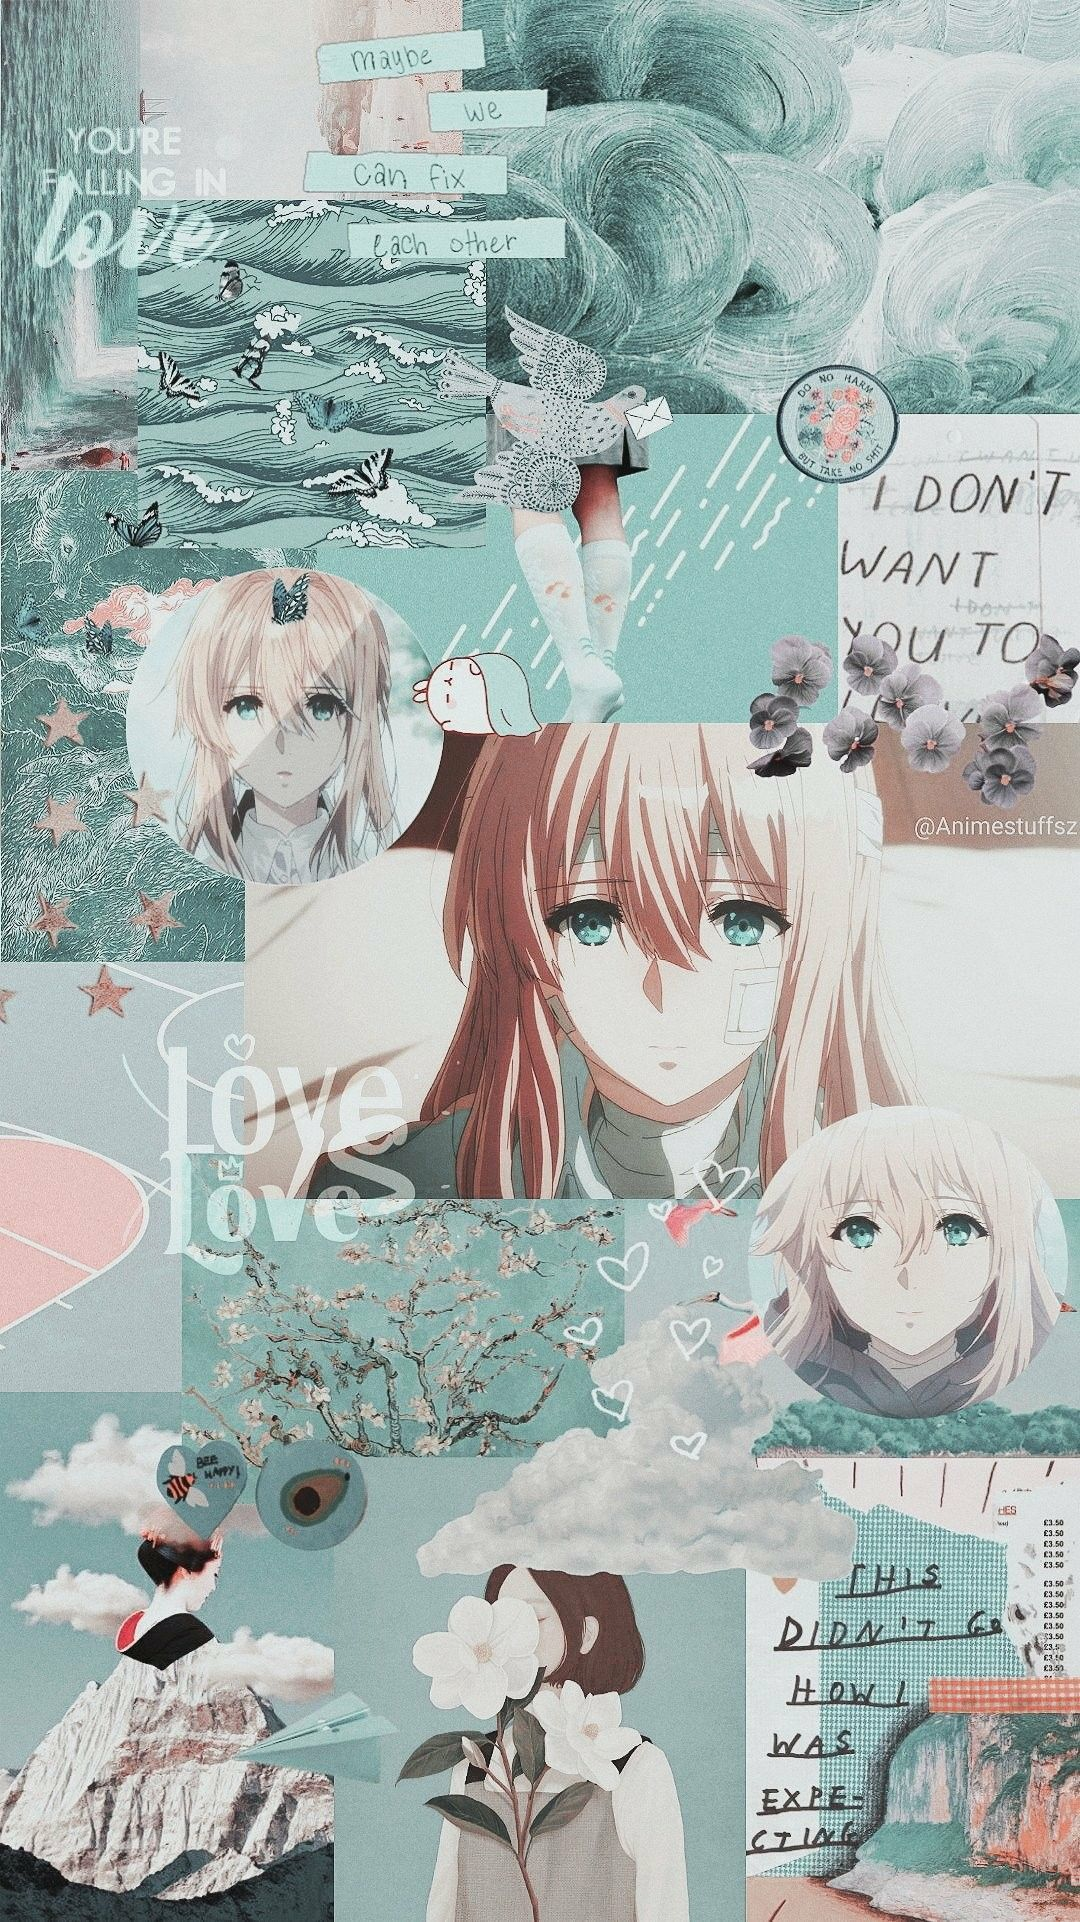 Get Latest Aesthetic Anime Wallpaper Iphone Violet Evergarden Anime Aesthetic Anime Anime Wallpaper